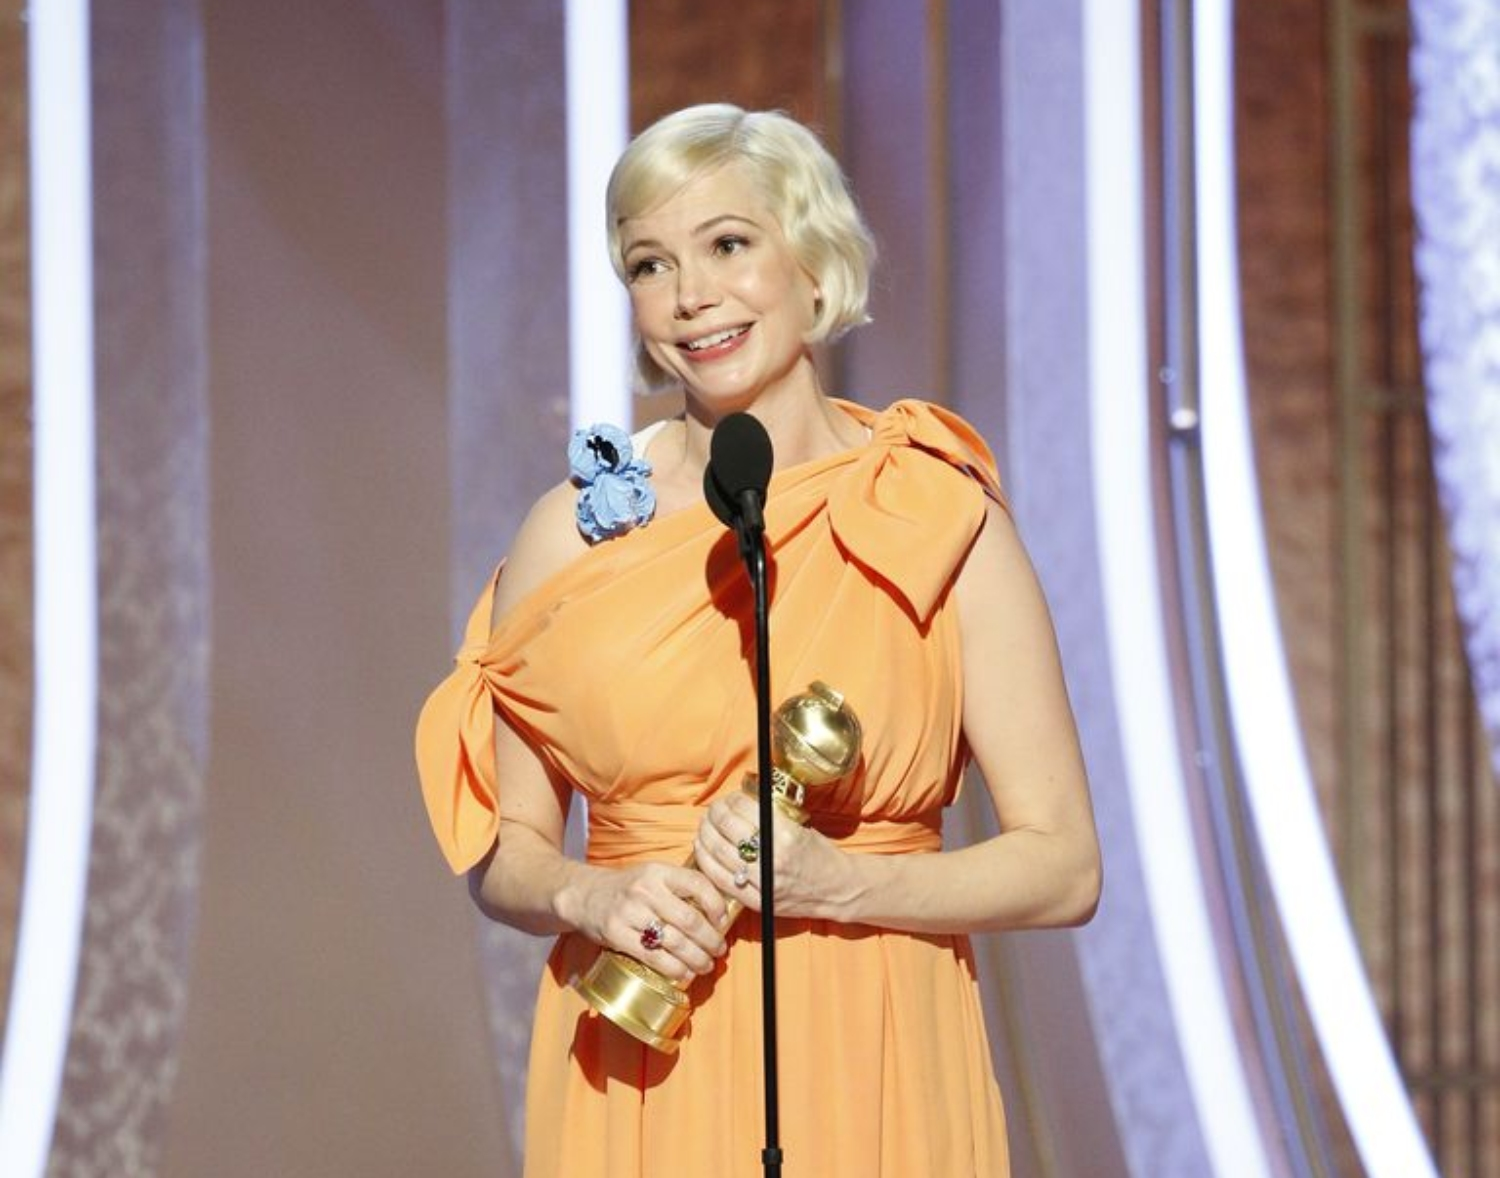 Michelle Williams Dedicated Her Rousing Golden Globes Speech to the Power of Women's Choice